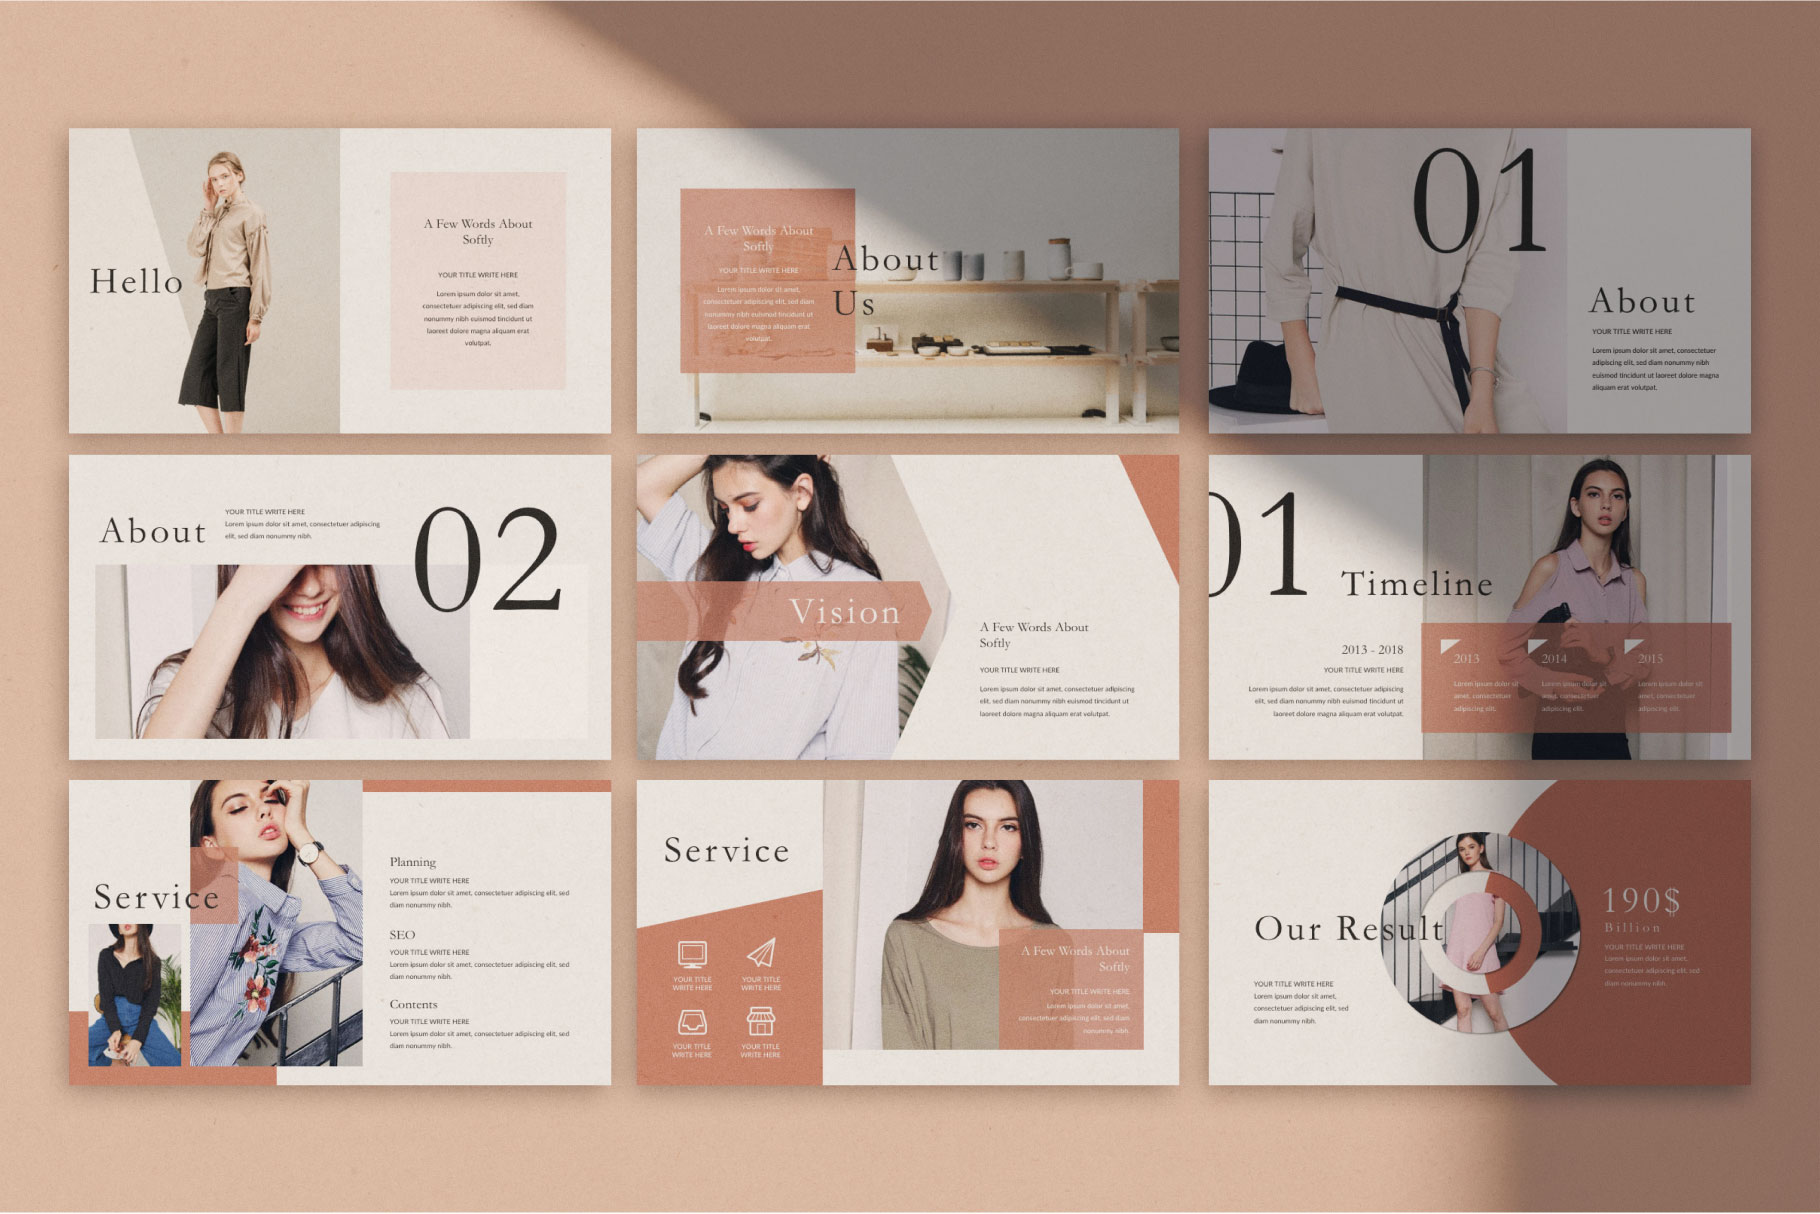 Softly Keynote Template example image 5